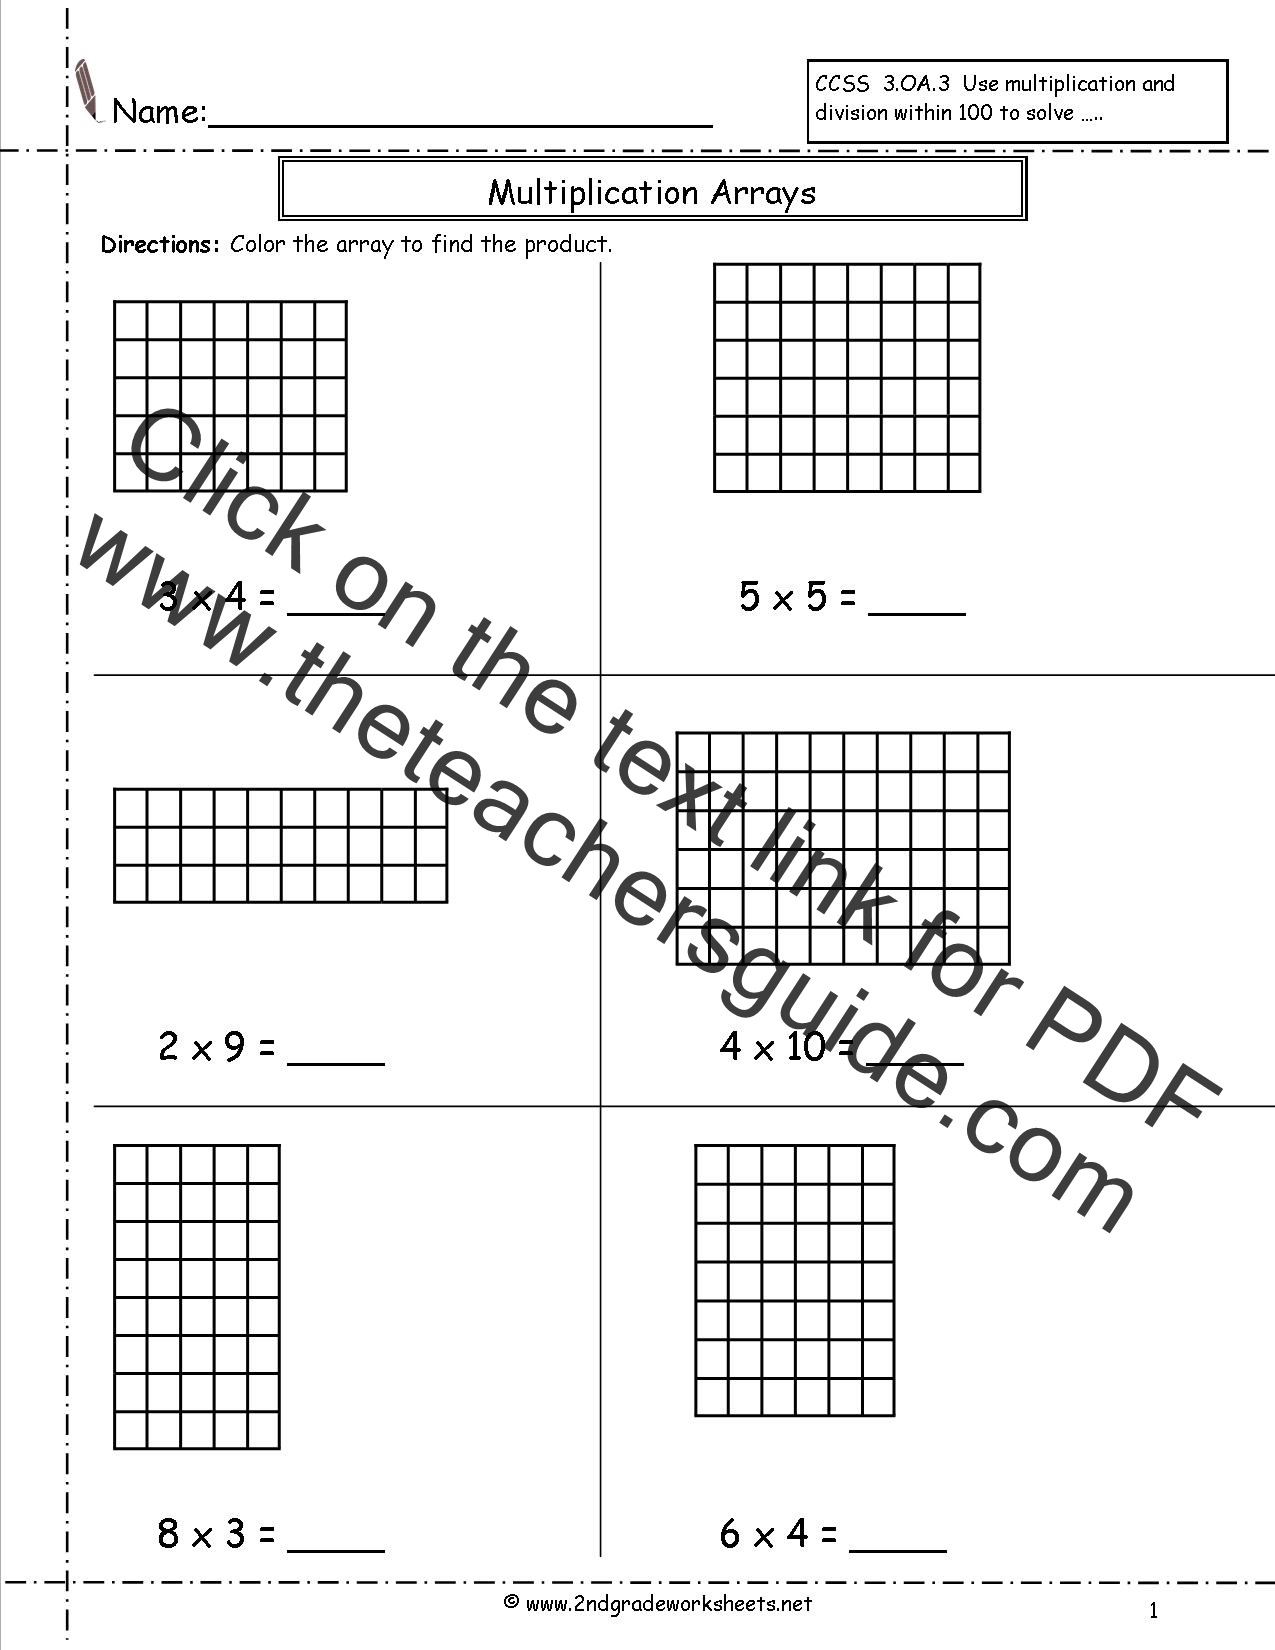 math worksheet : multiplication arrays worksheets : Area Model Multiplication Worksheets